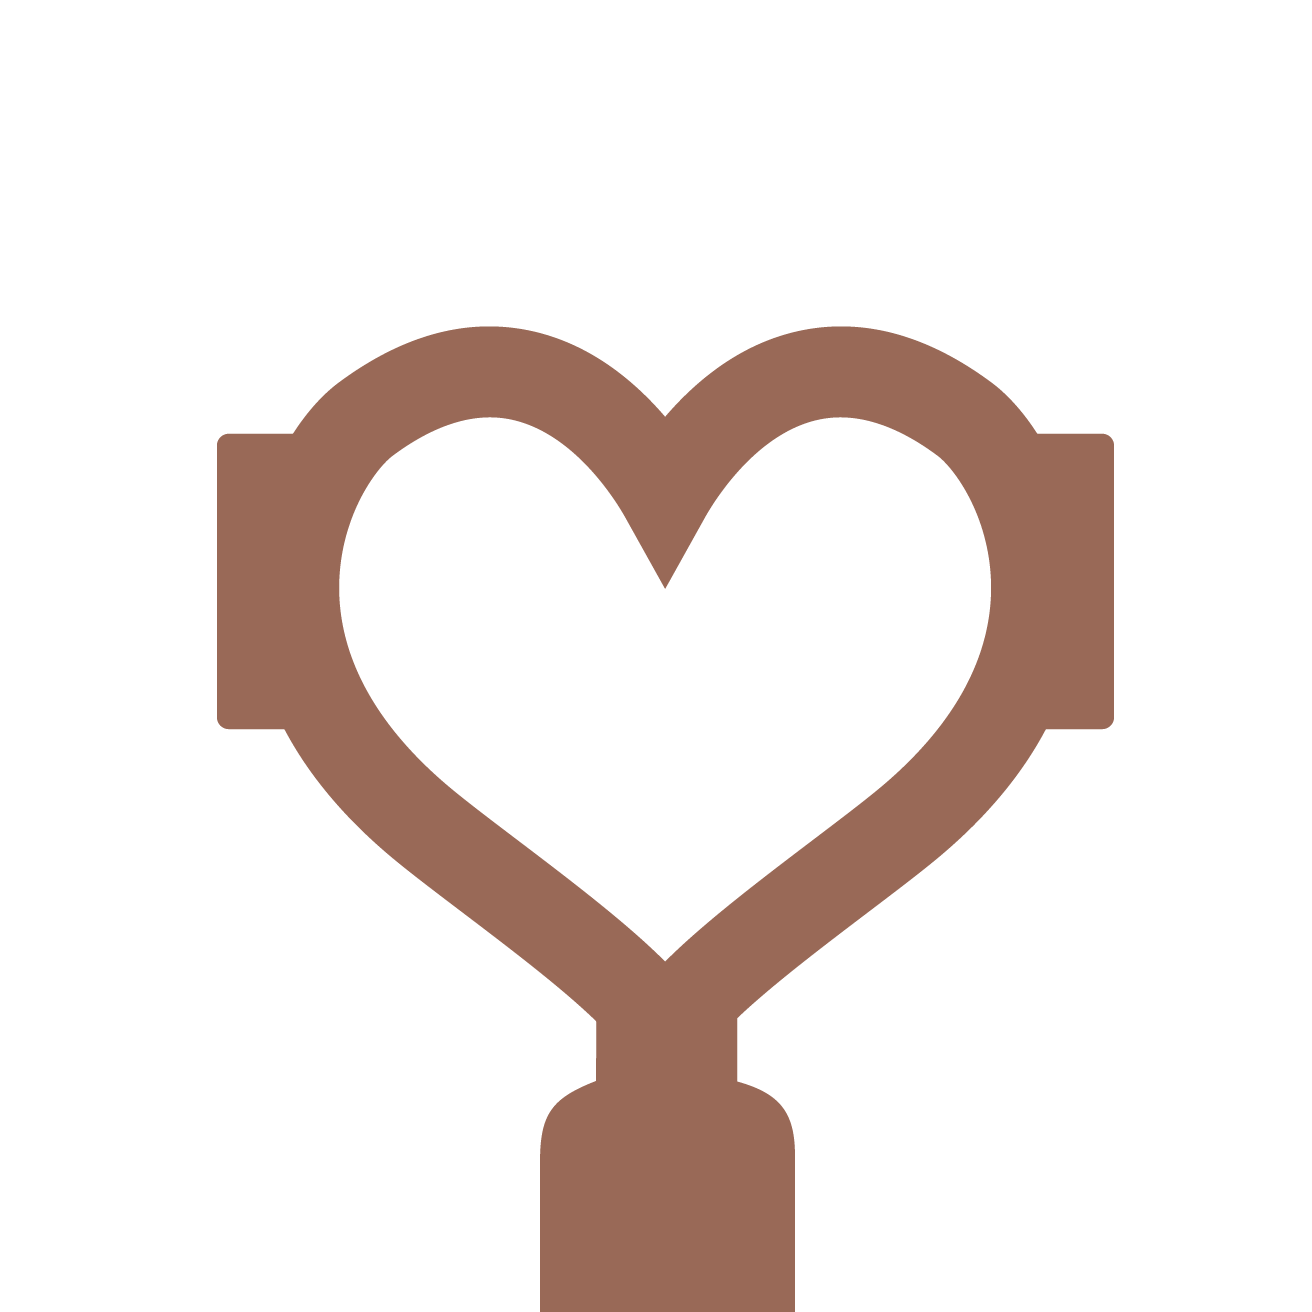 Moccamaster Technivorm KBG741 AO Orange